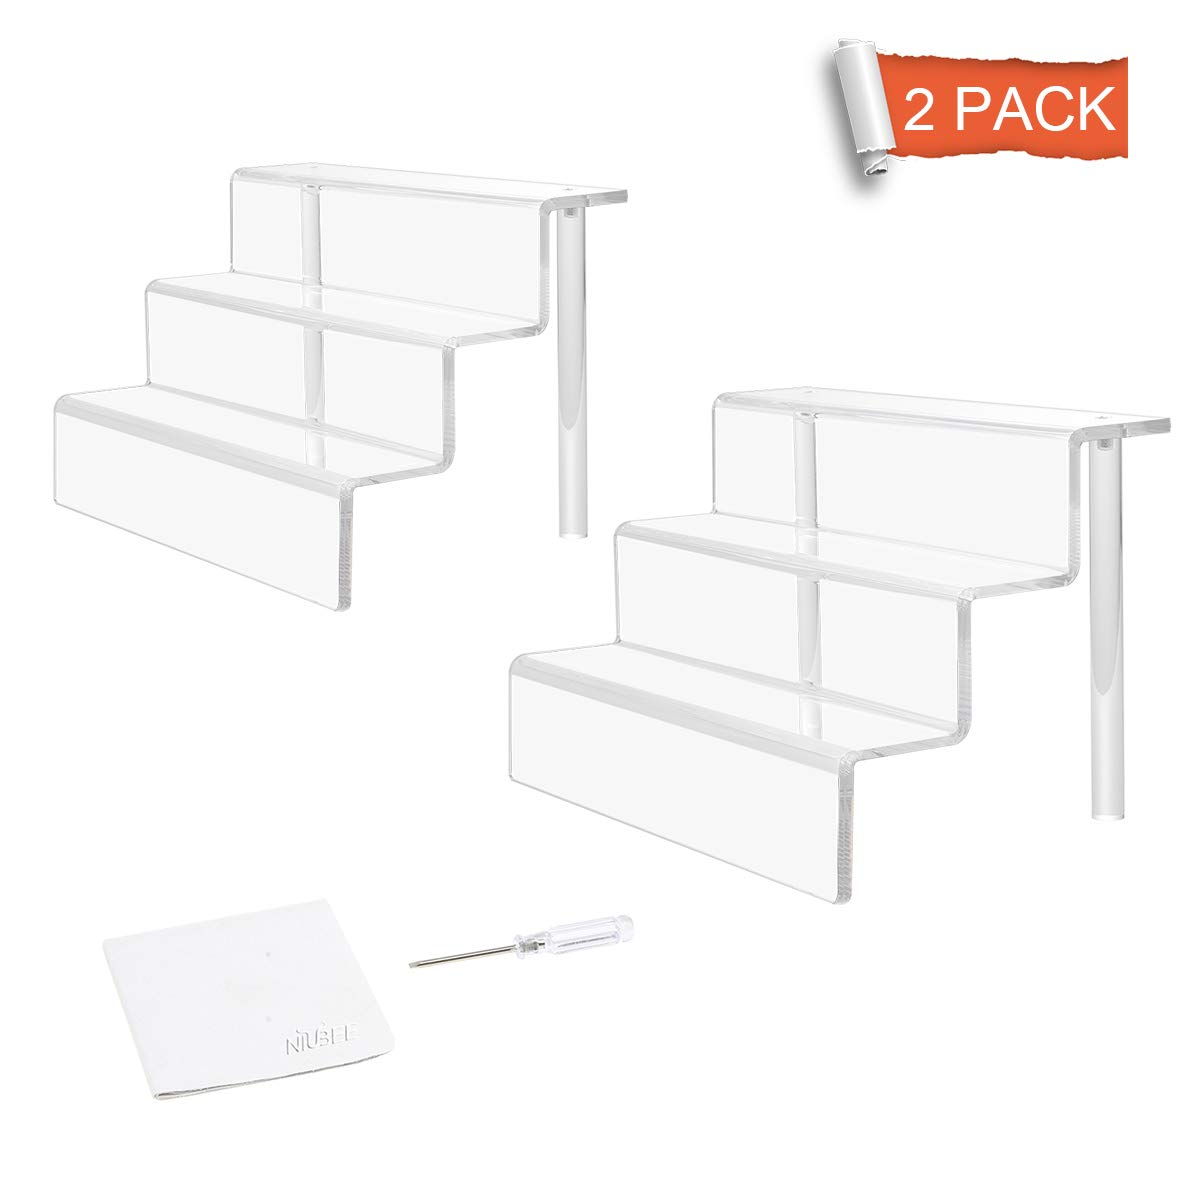 NIUBEE 2 Pack Acrylic Riser Display Shelf for Amiibo Funko POP Figures, Cupcakes Stand for Cabinet, Countertops, Table - 3-Tier, Clear (9×6) by NIUBEE